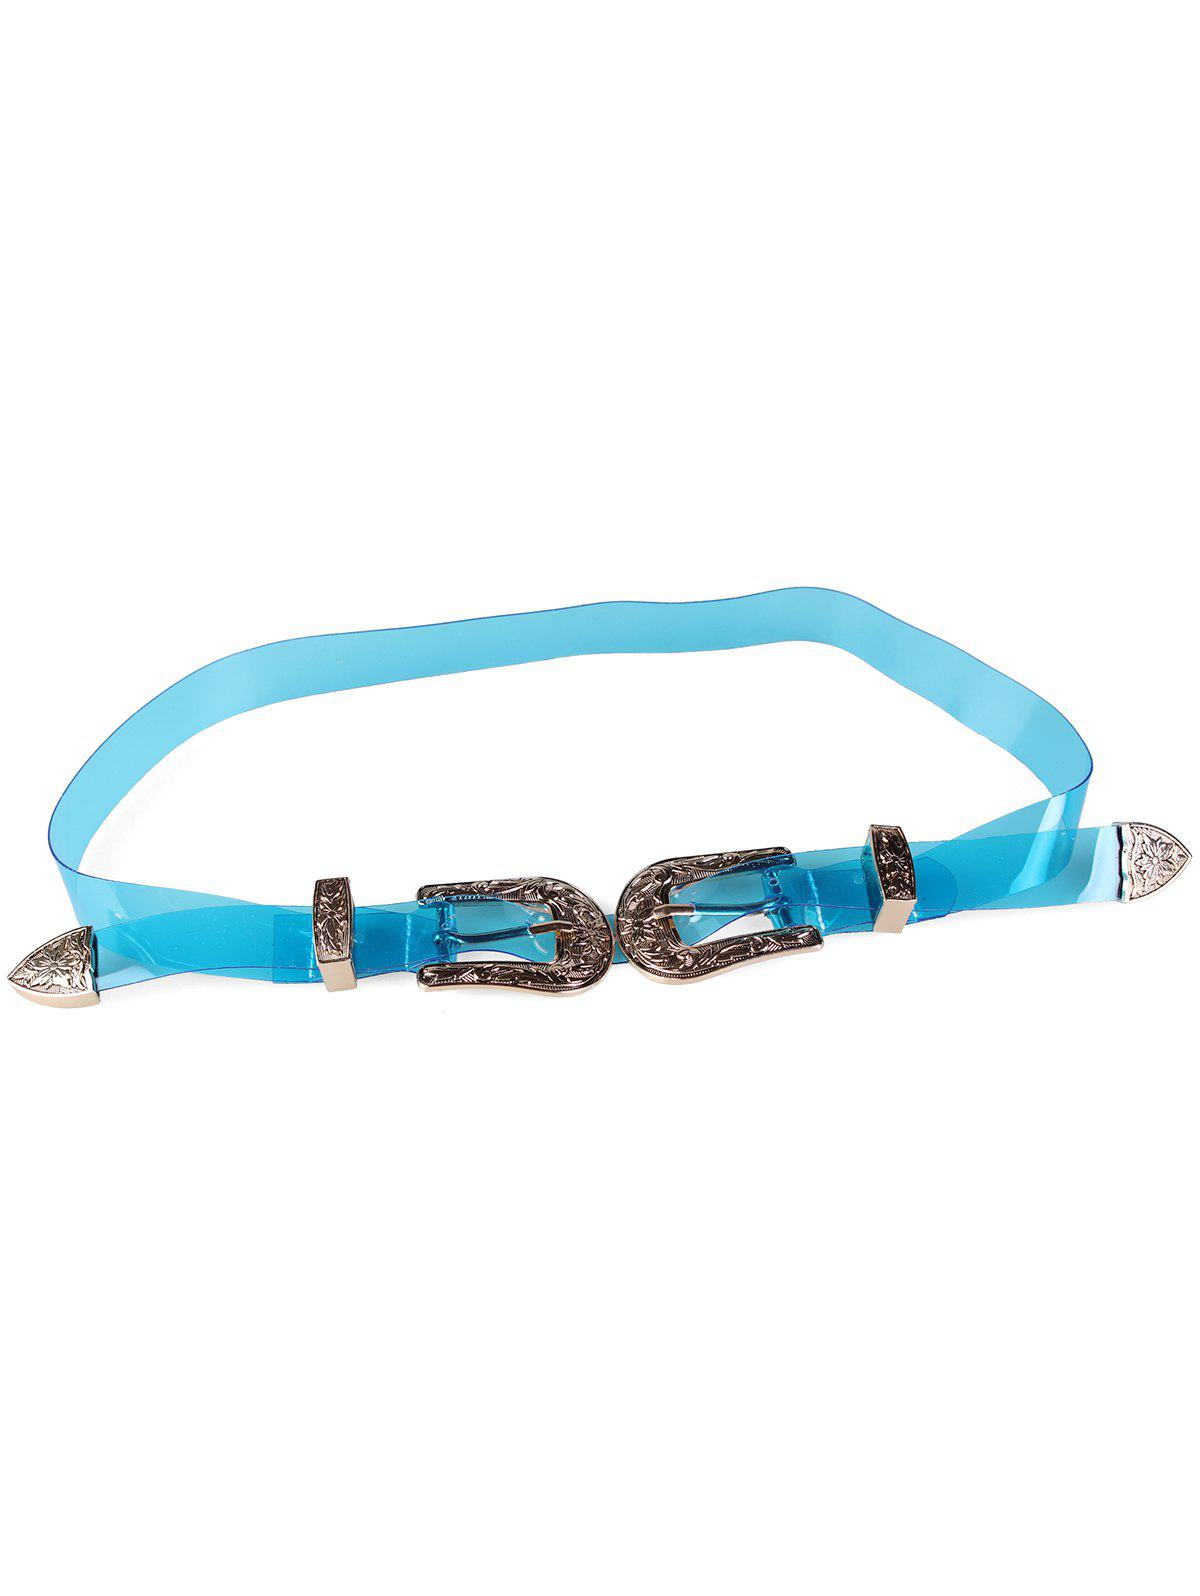 Affordable Stylish Jelly Color Double Head Buckle Waist Belt